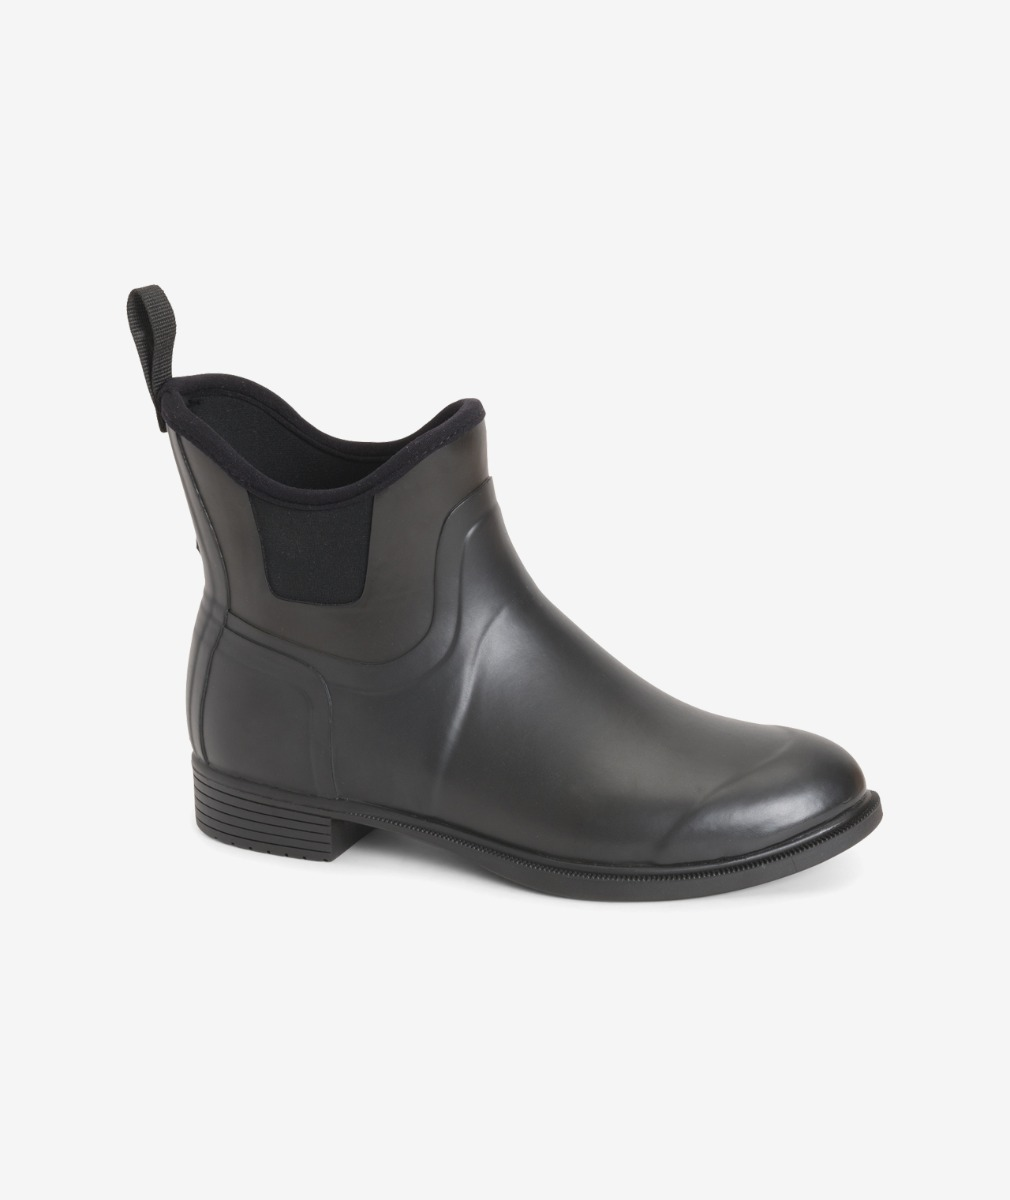 Muck Boot Women Derby Riding Boot in Black